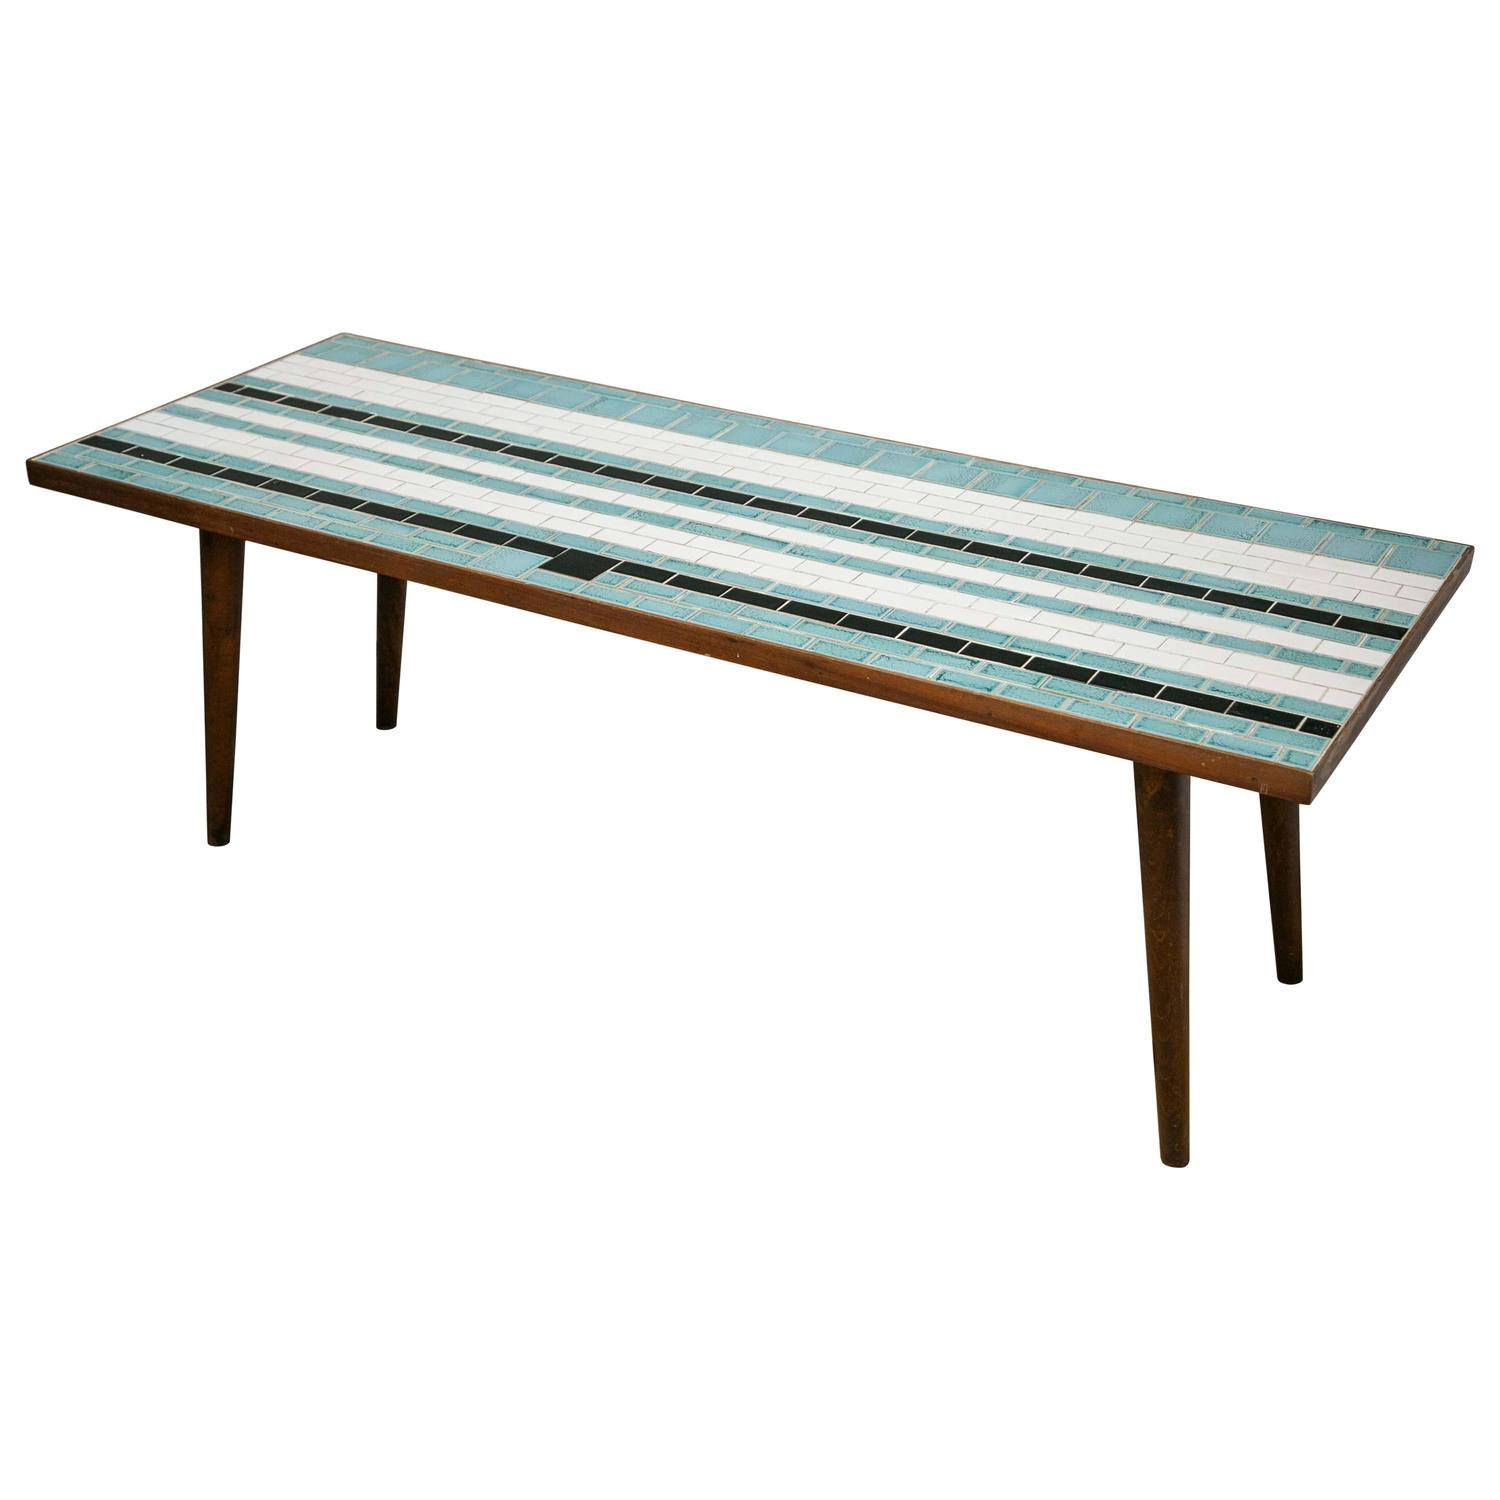 Eames Style Fantastic Blue White And Black Mosaic Tile Mid Century Modern Table At 1stdibs